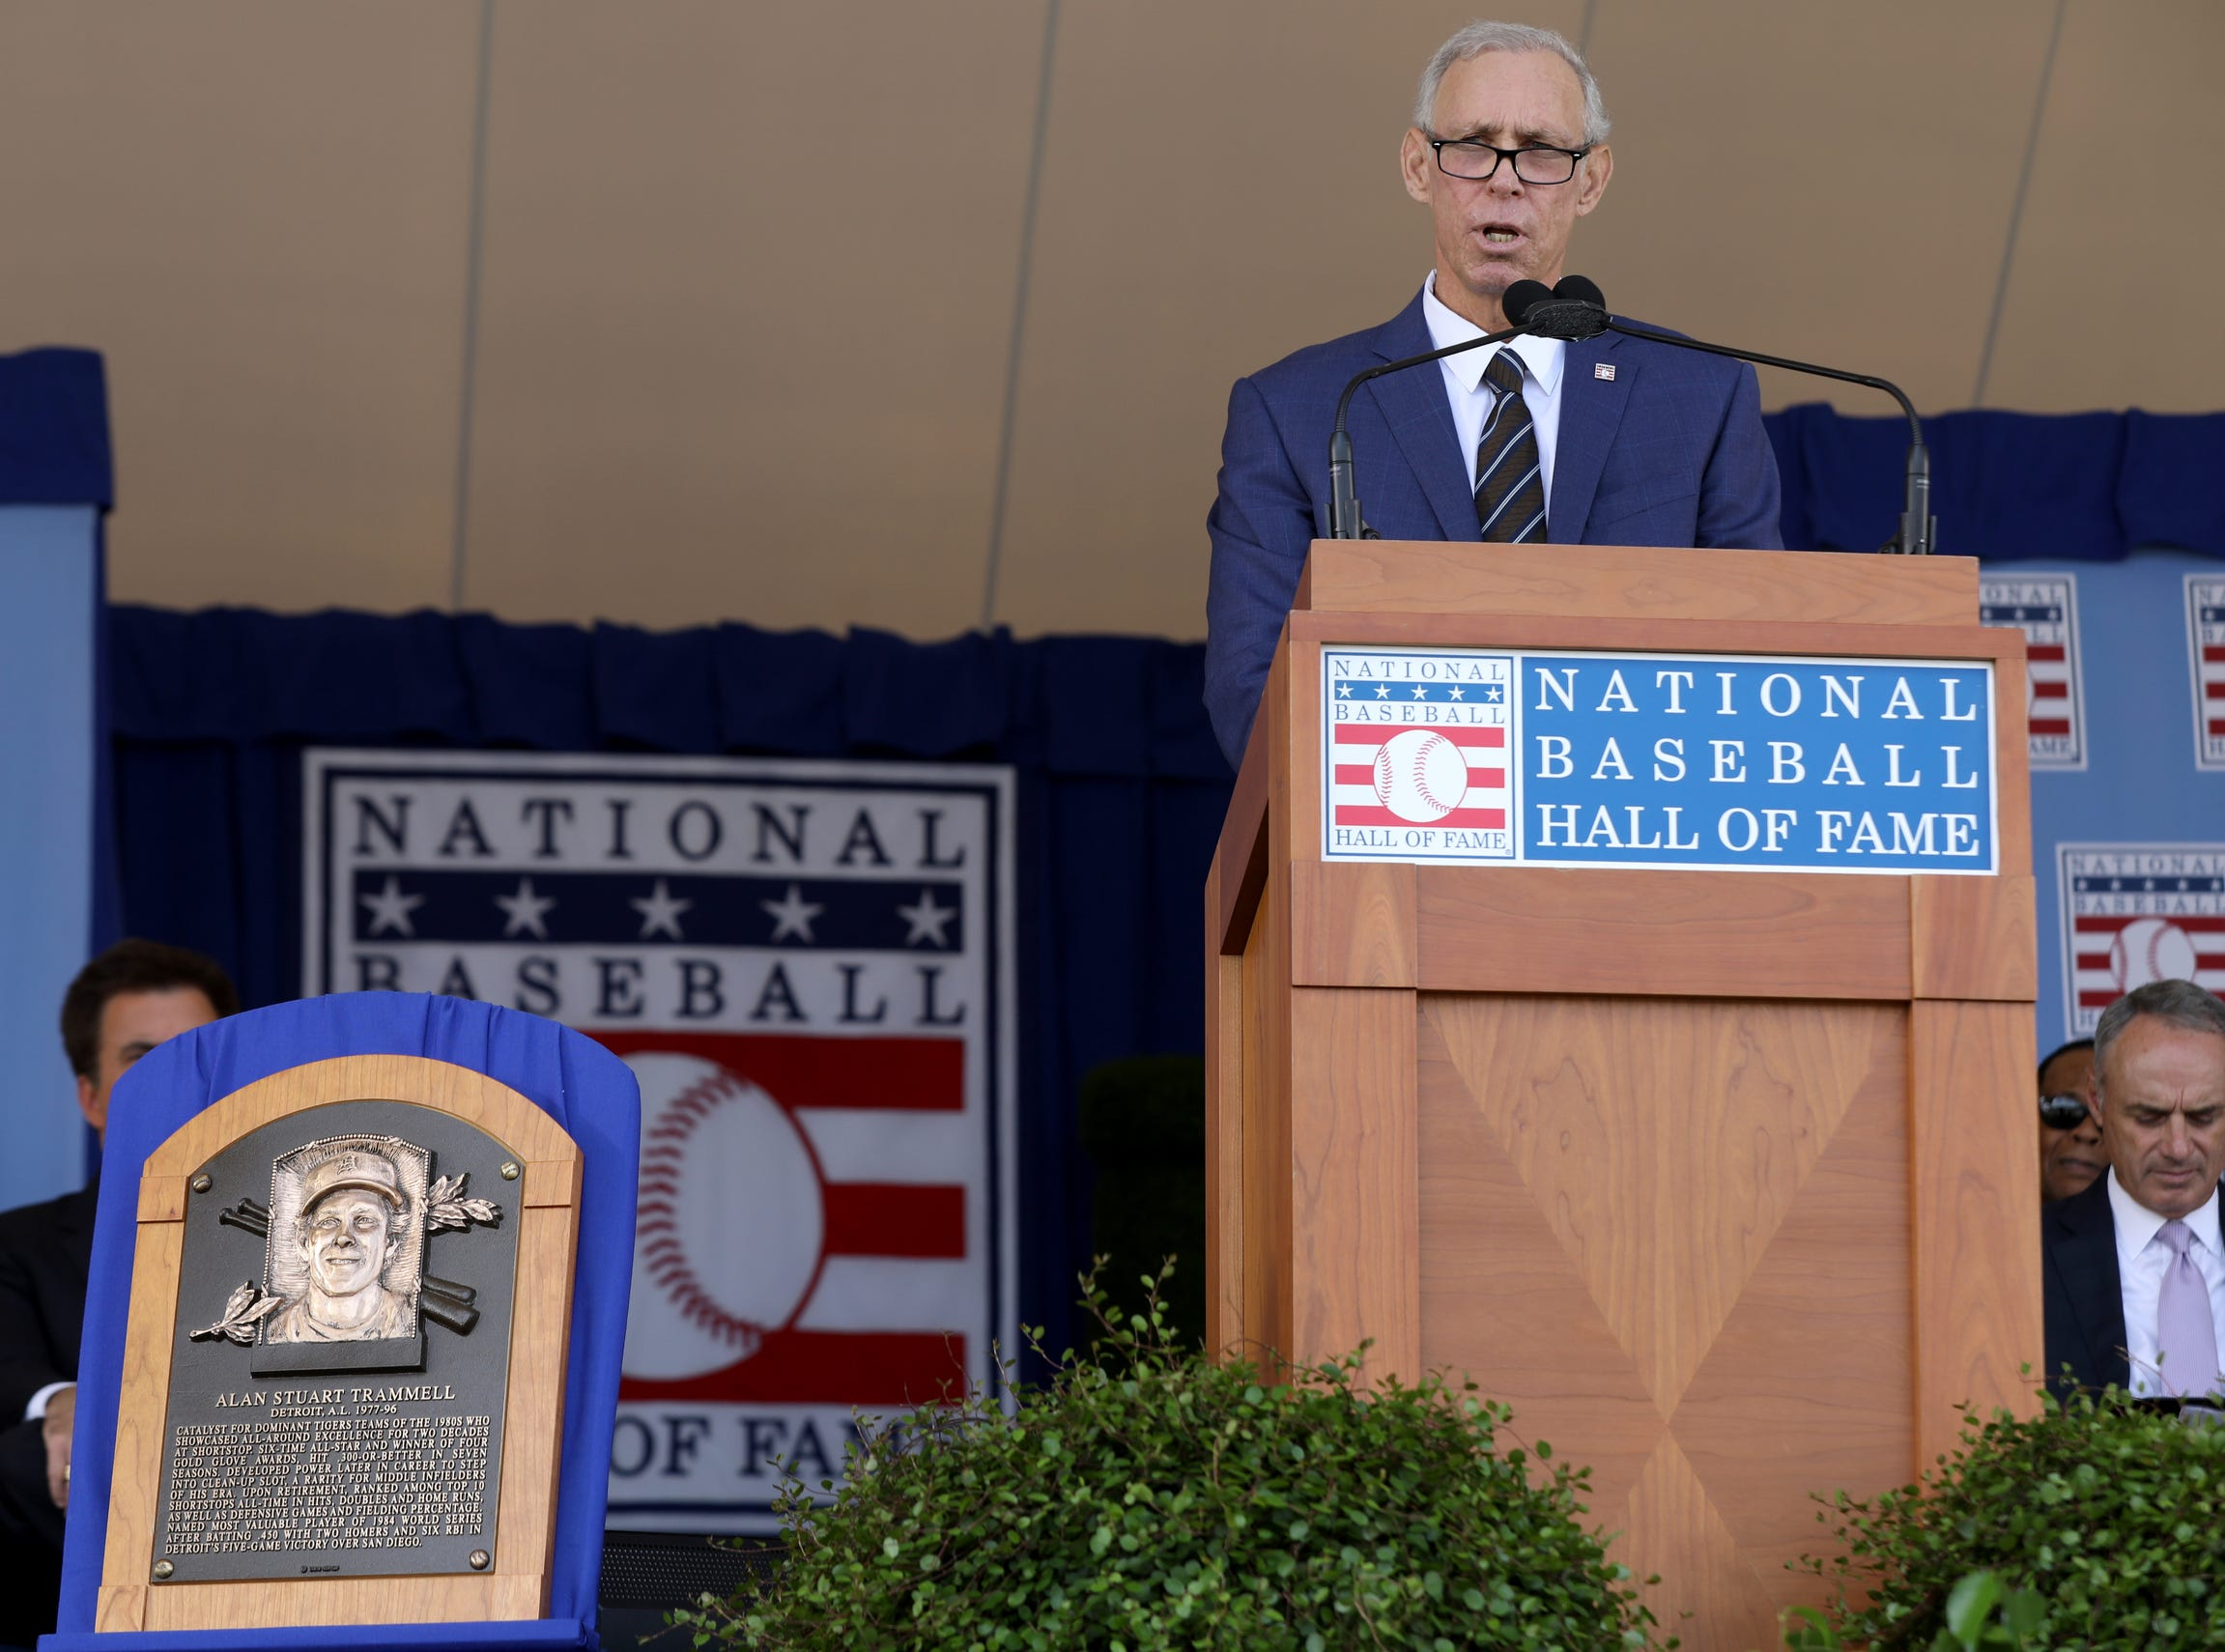 Tigers great Alan Trammell delivers his speech to a crowd of thousands at the Clark Sports Center during the National Baseball Hall of Fame induction ceremony in Cooperstown, N.Y. ,on Sunday, July 29, 2018.